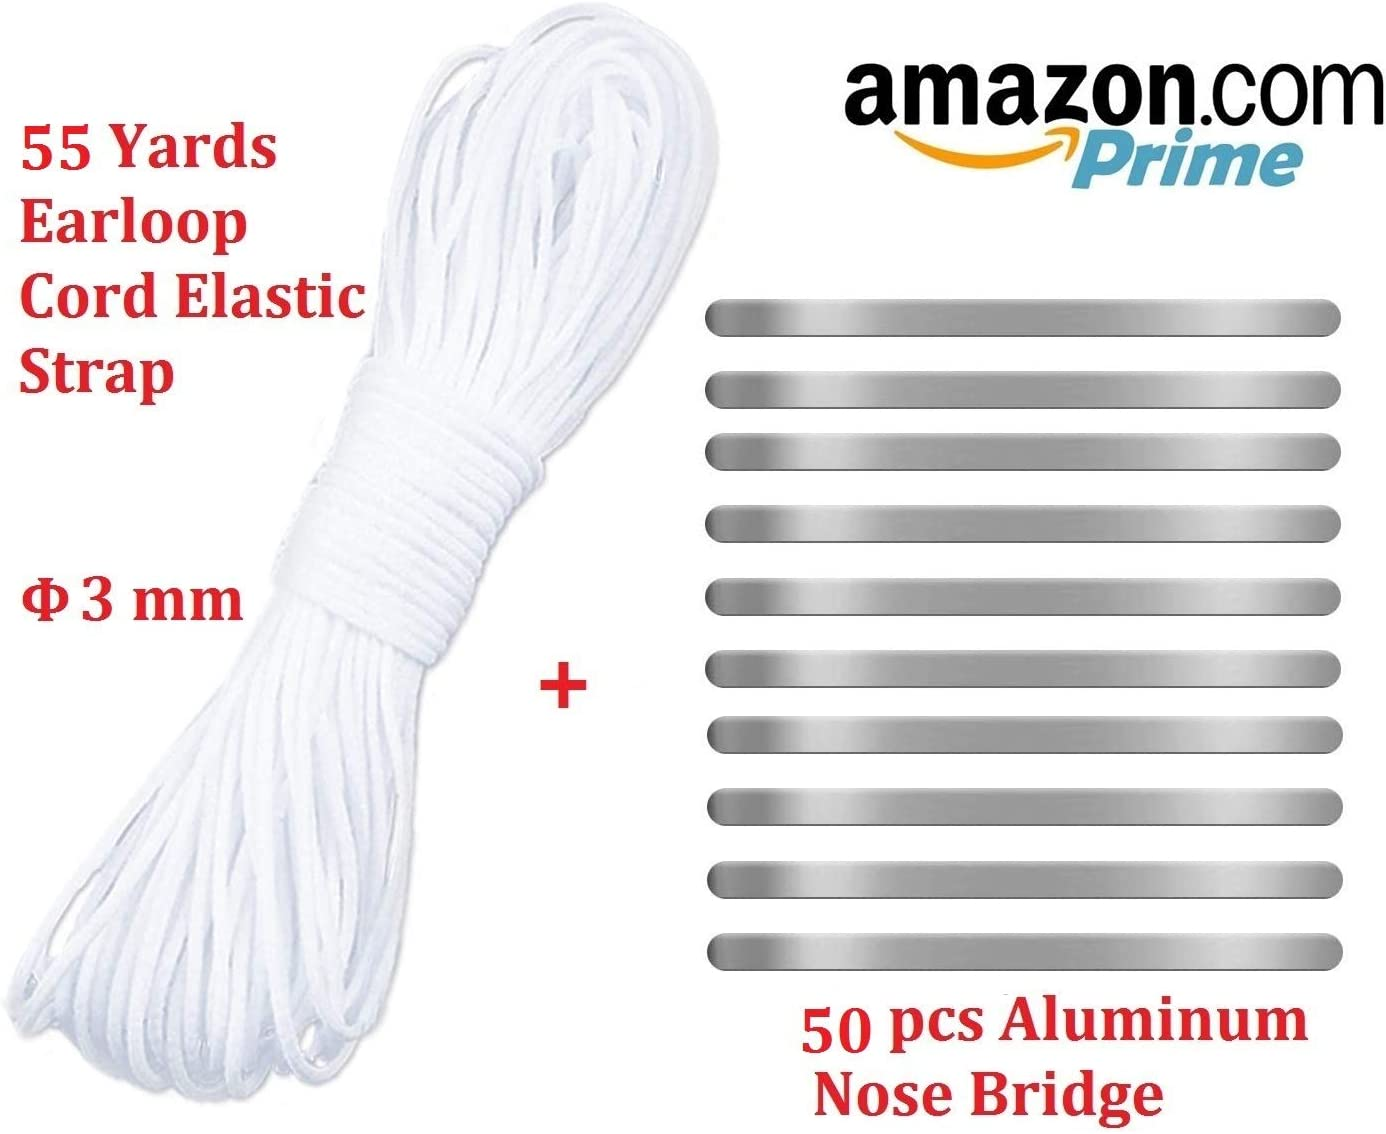 22 Yards Elastic Cord Rope White Band 1//8 Inch Round Ear Tie Earloop Strap Handmade String with 20pcs 90MM Aluminum Nose Bridge for Crafts DIY Sewing